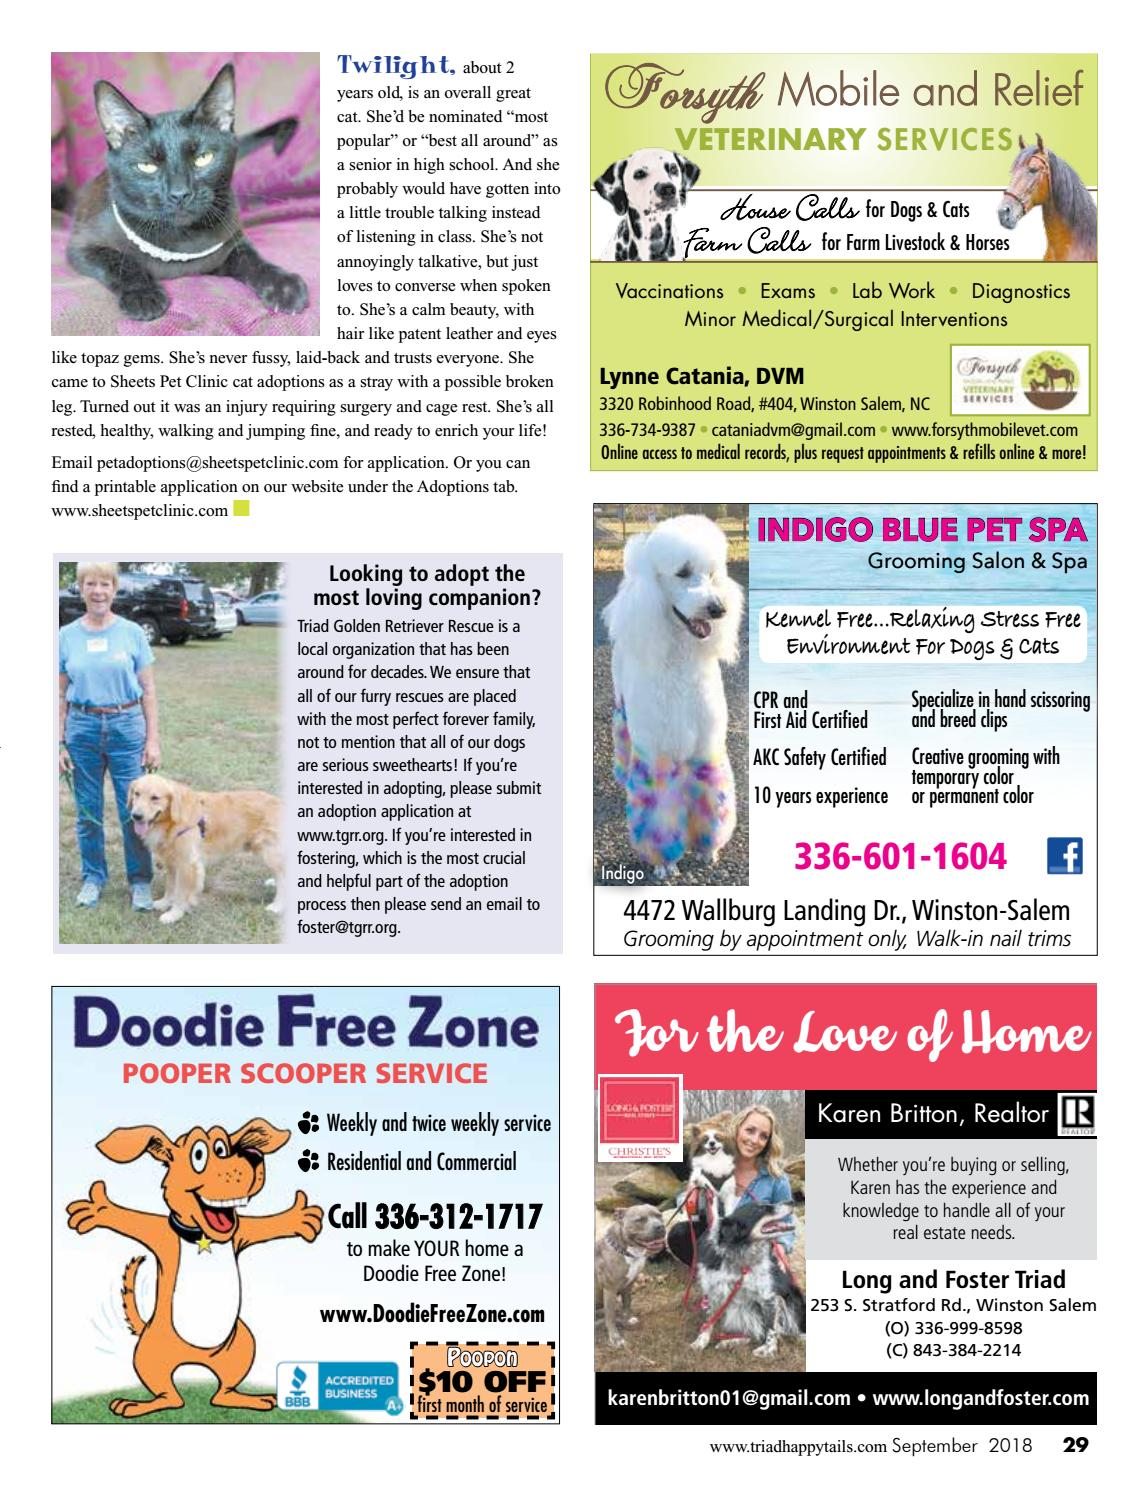 Triad Happy Tails Magazine Sept18 By Beverly Beck Associates Issuu